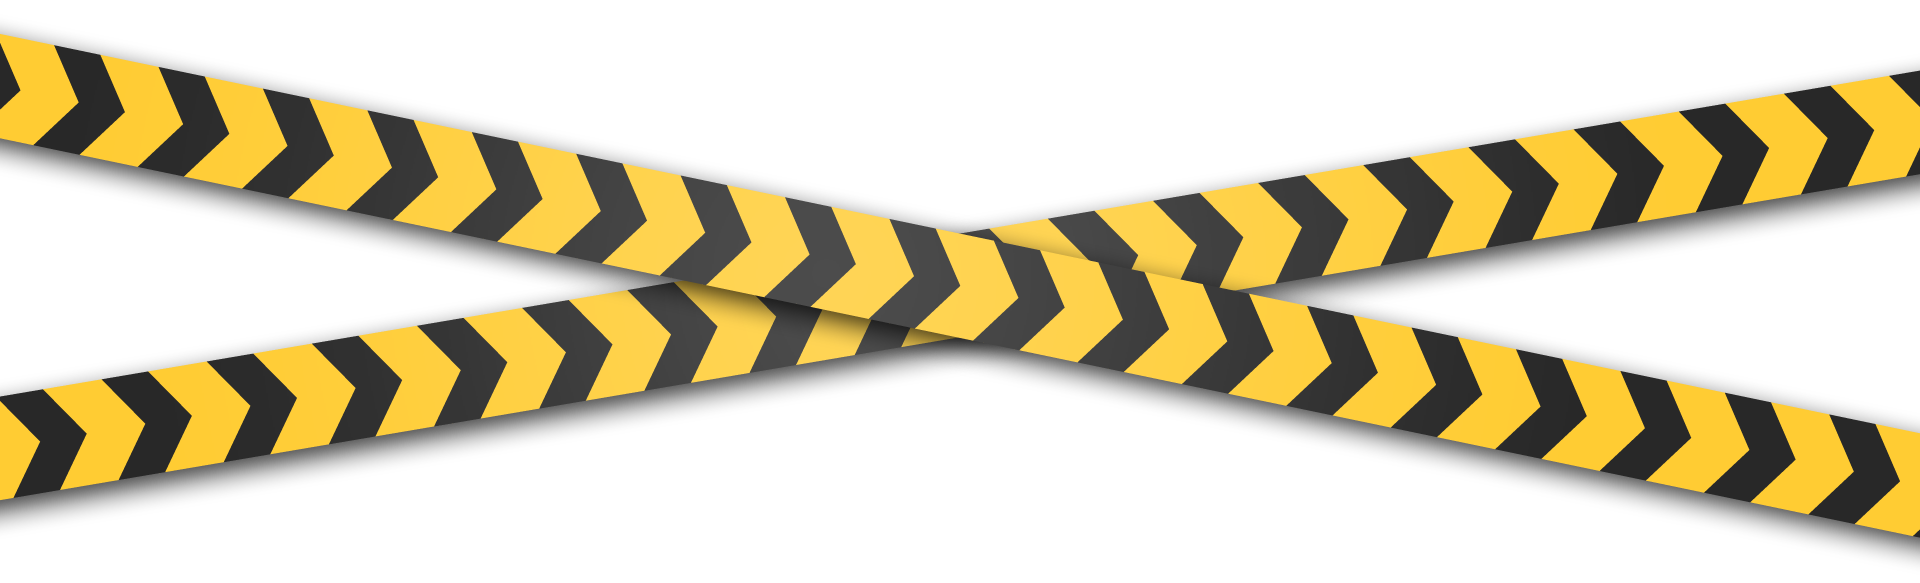 Images label free download. Under construction tape png jpg free